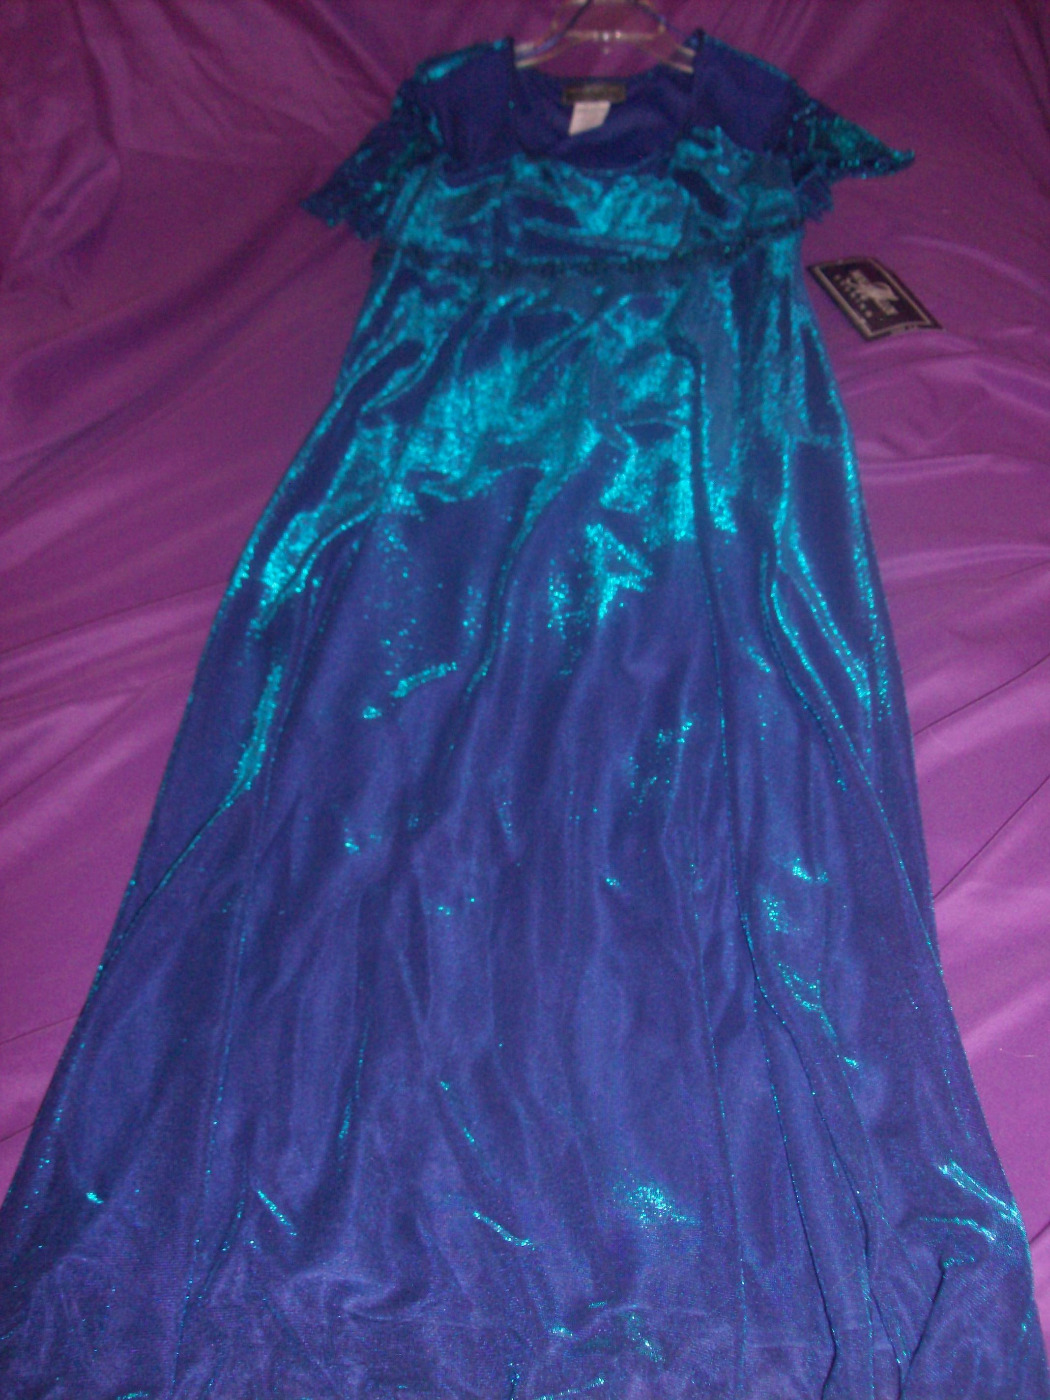 Molly Malloy Evening dress. Size 14.